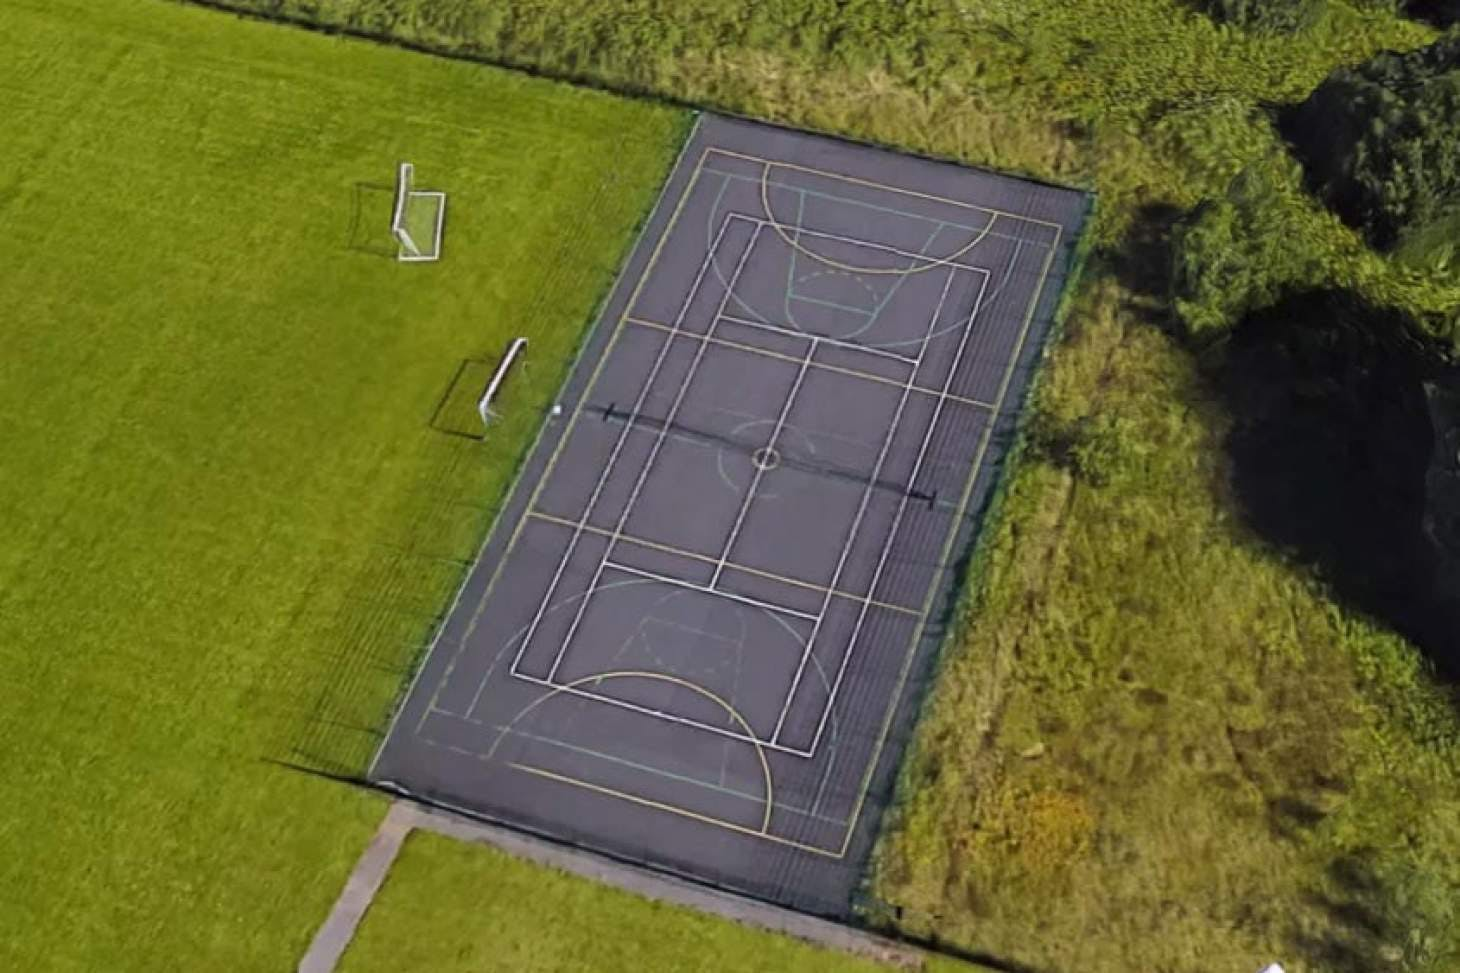 South Manchester Sports Club Outdoor | Concrete tennis court